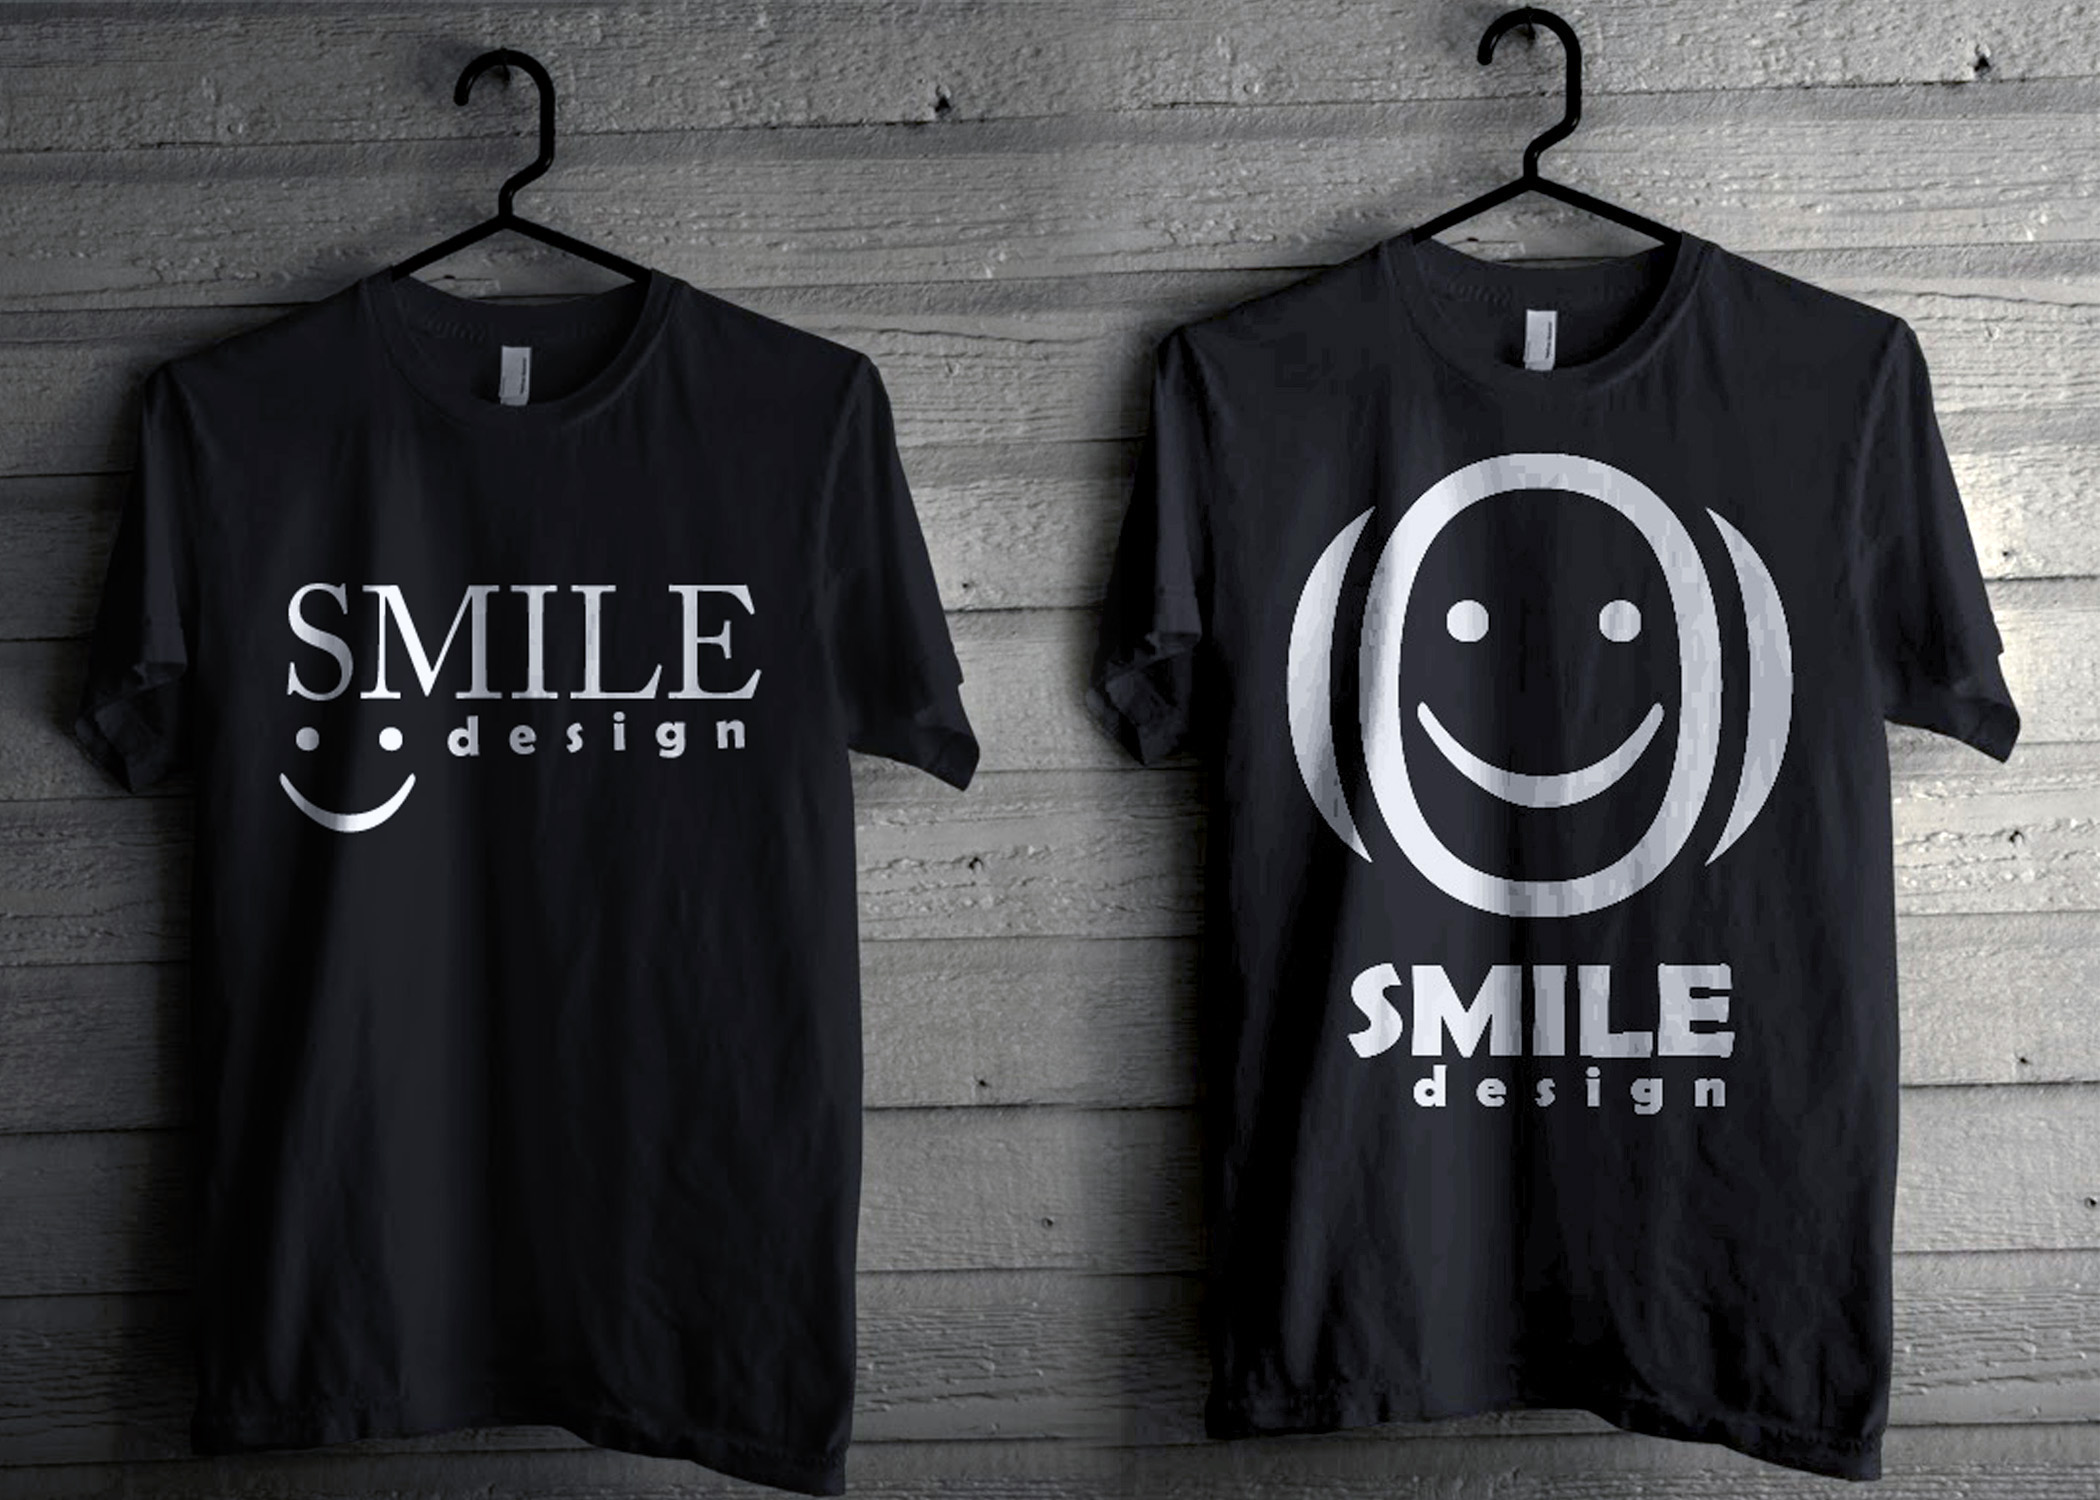 order i will put your logo into realistic tshirt mock up service